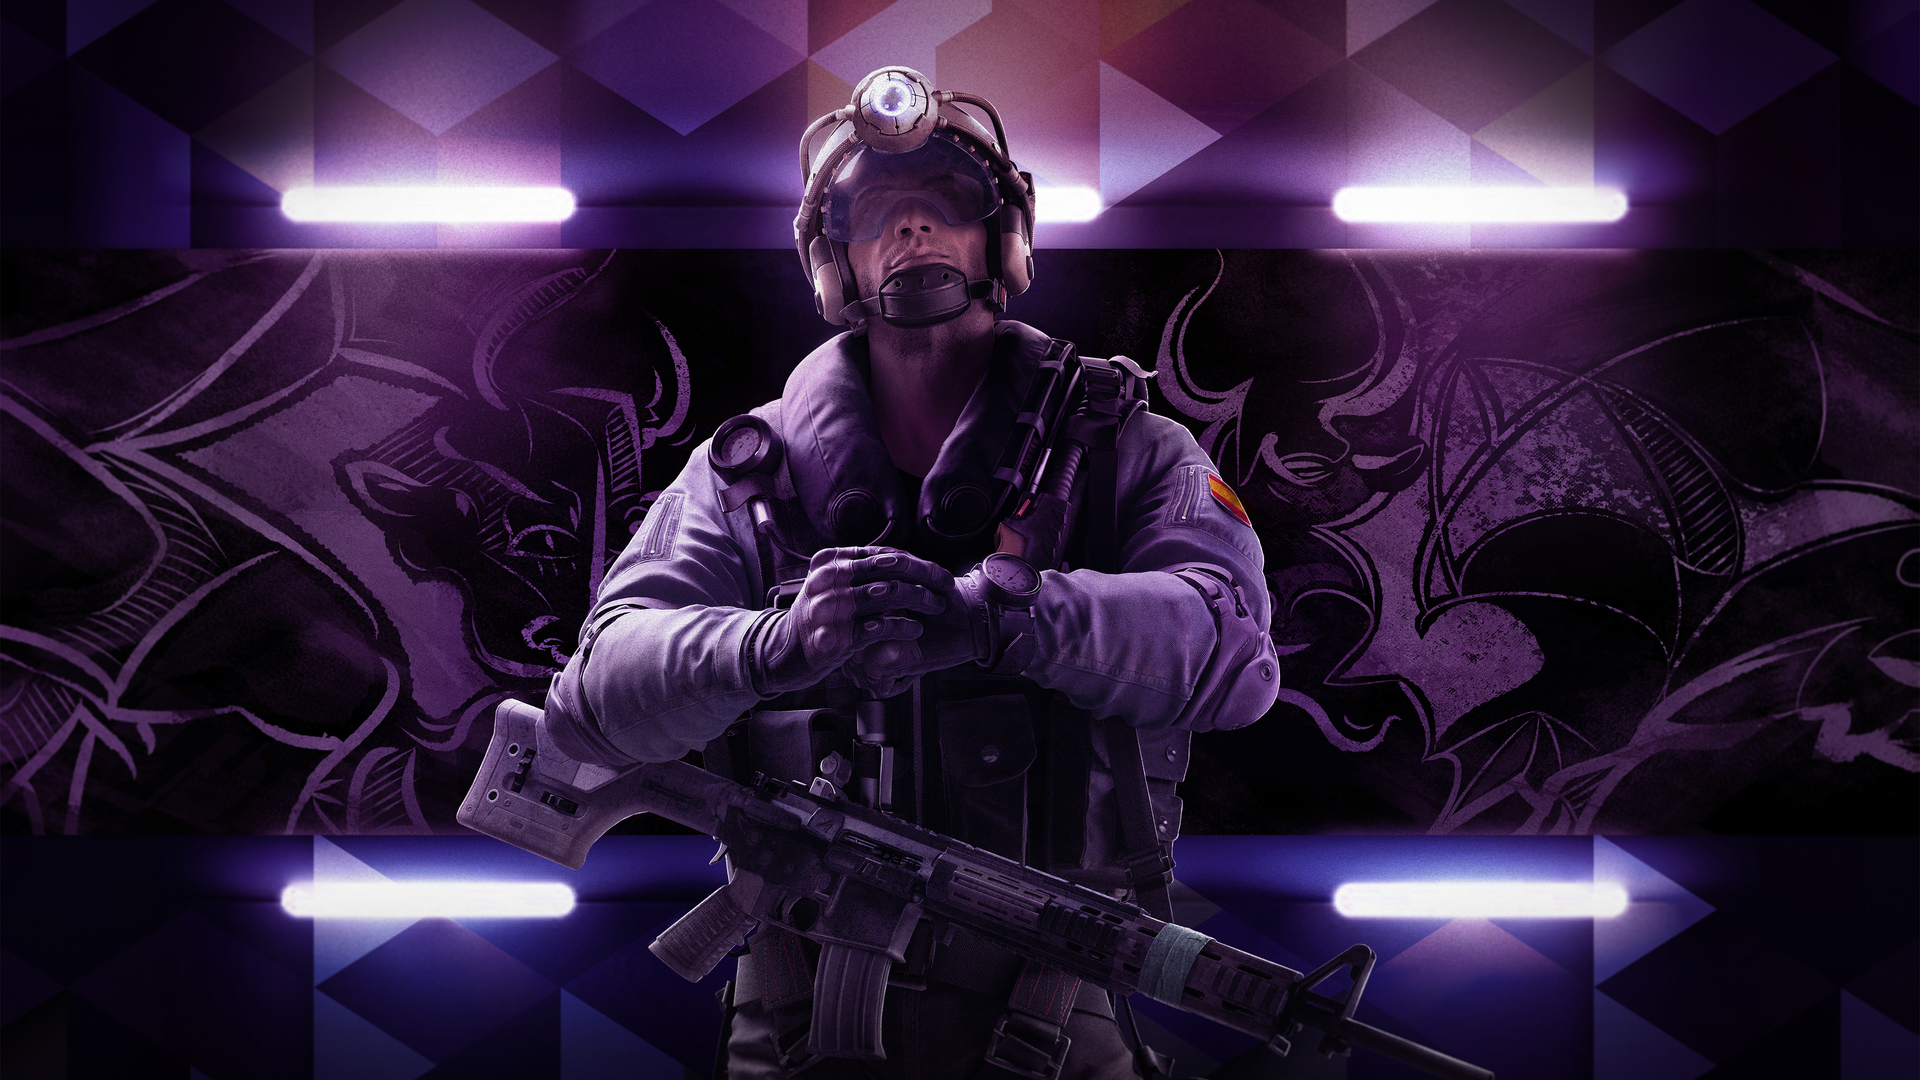 Rainbow Six Siege HTC Wallpapers